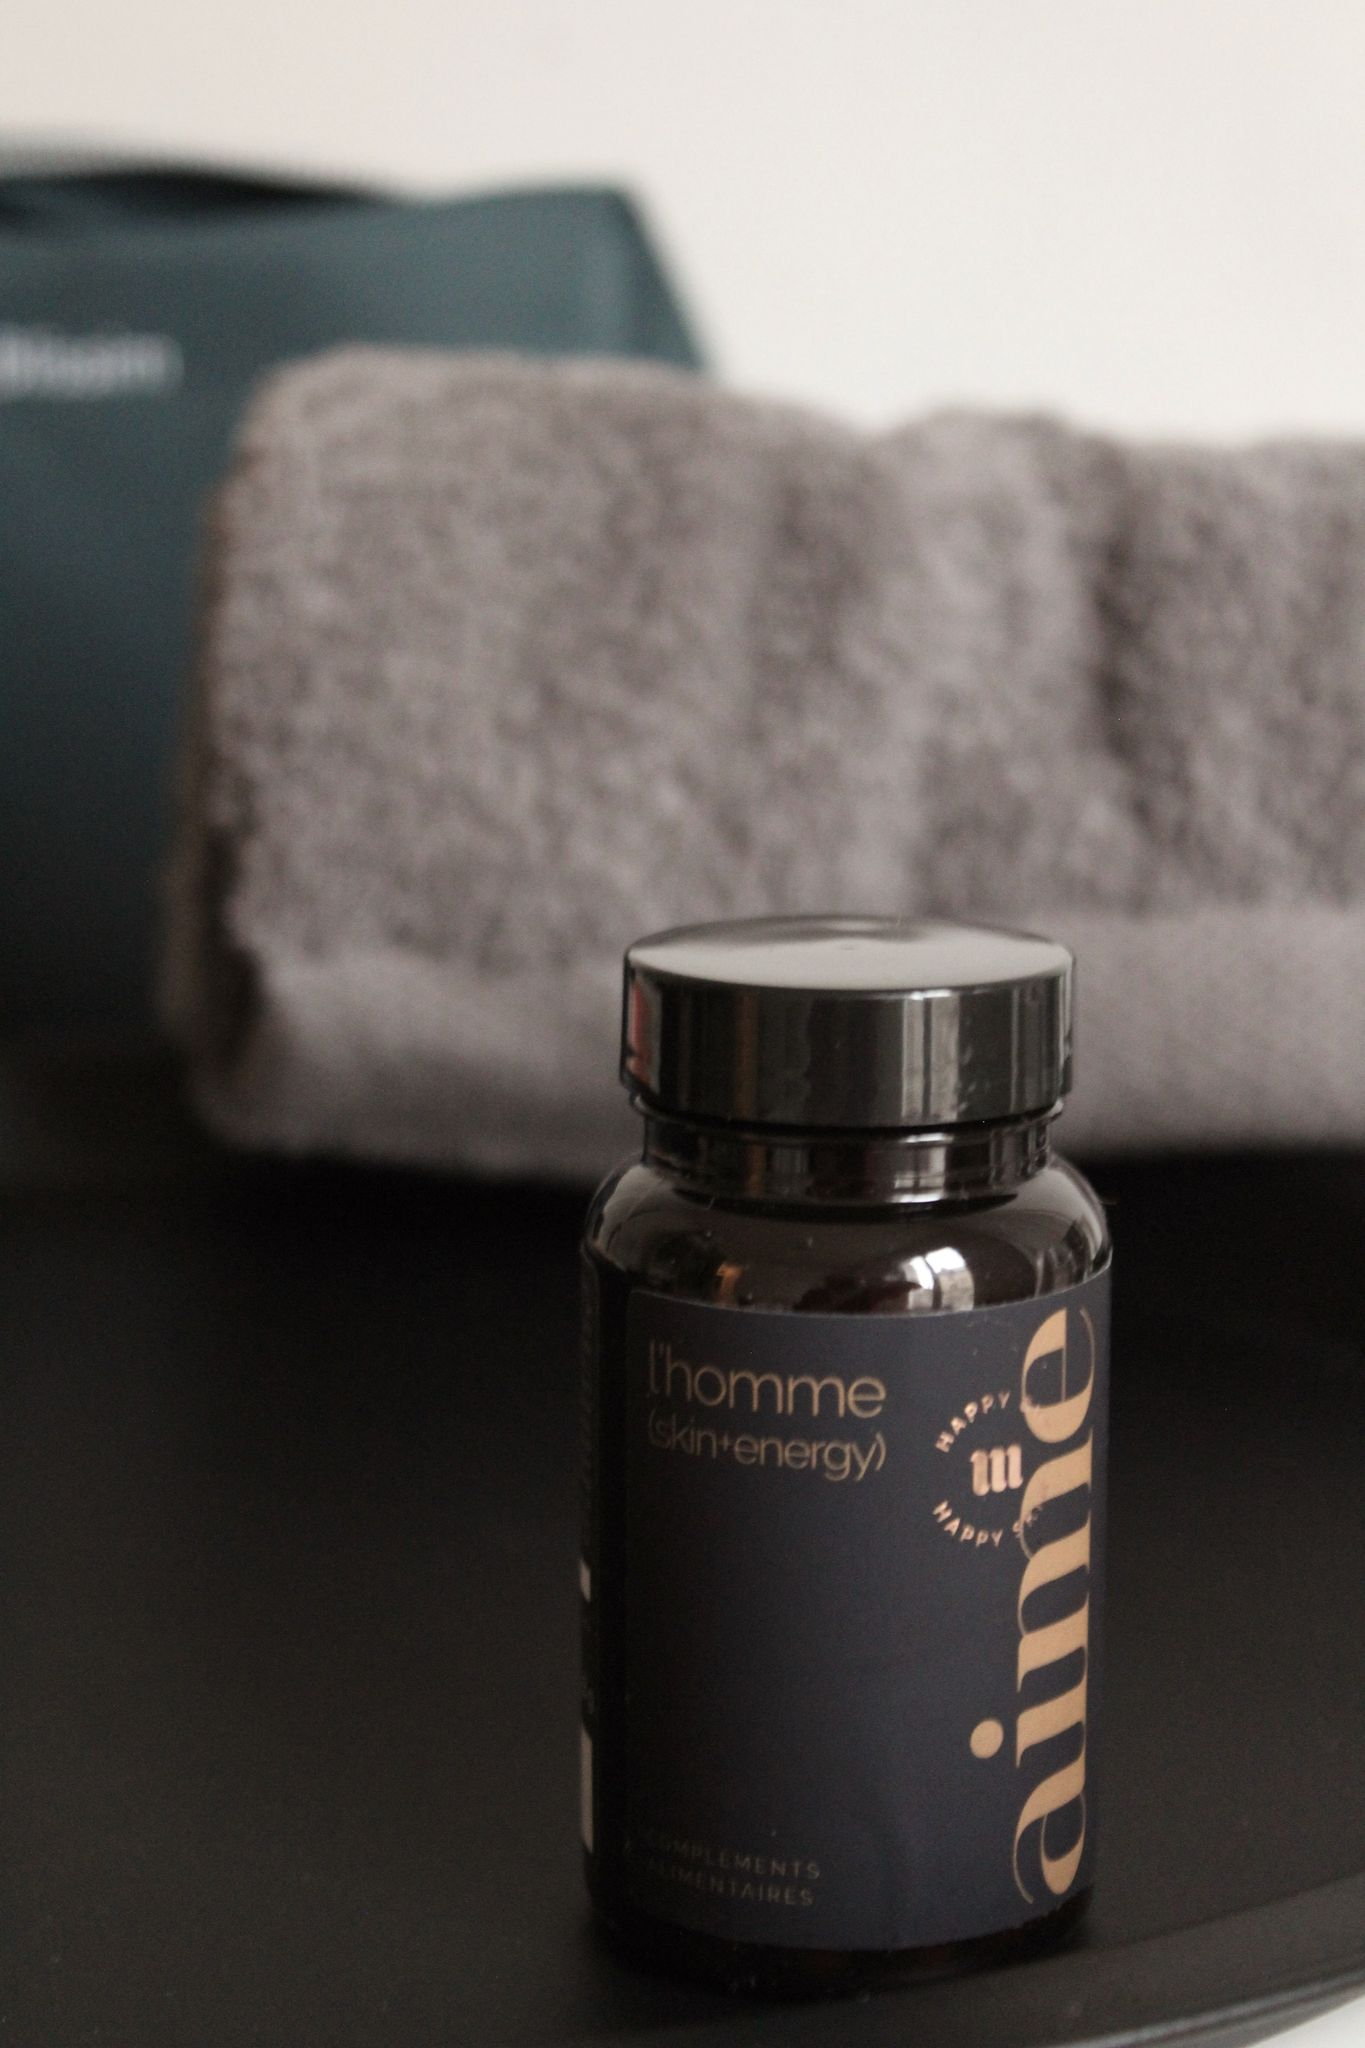 compléments alimentaires L'homme skin+energy Aime Skincare